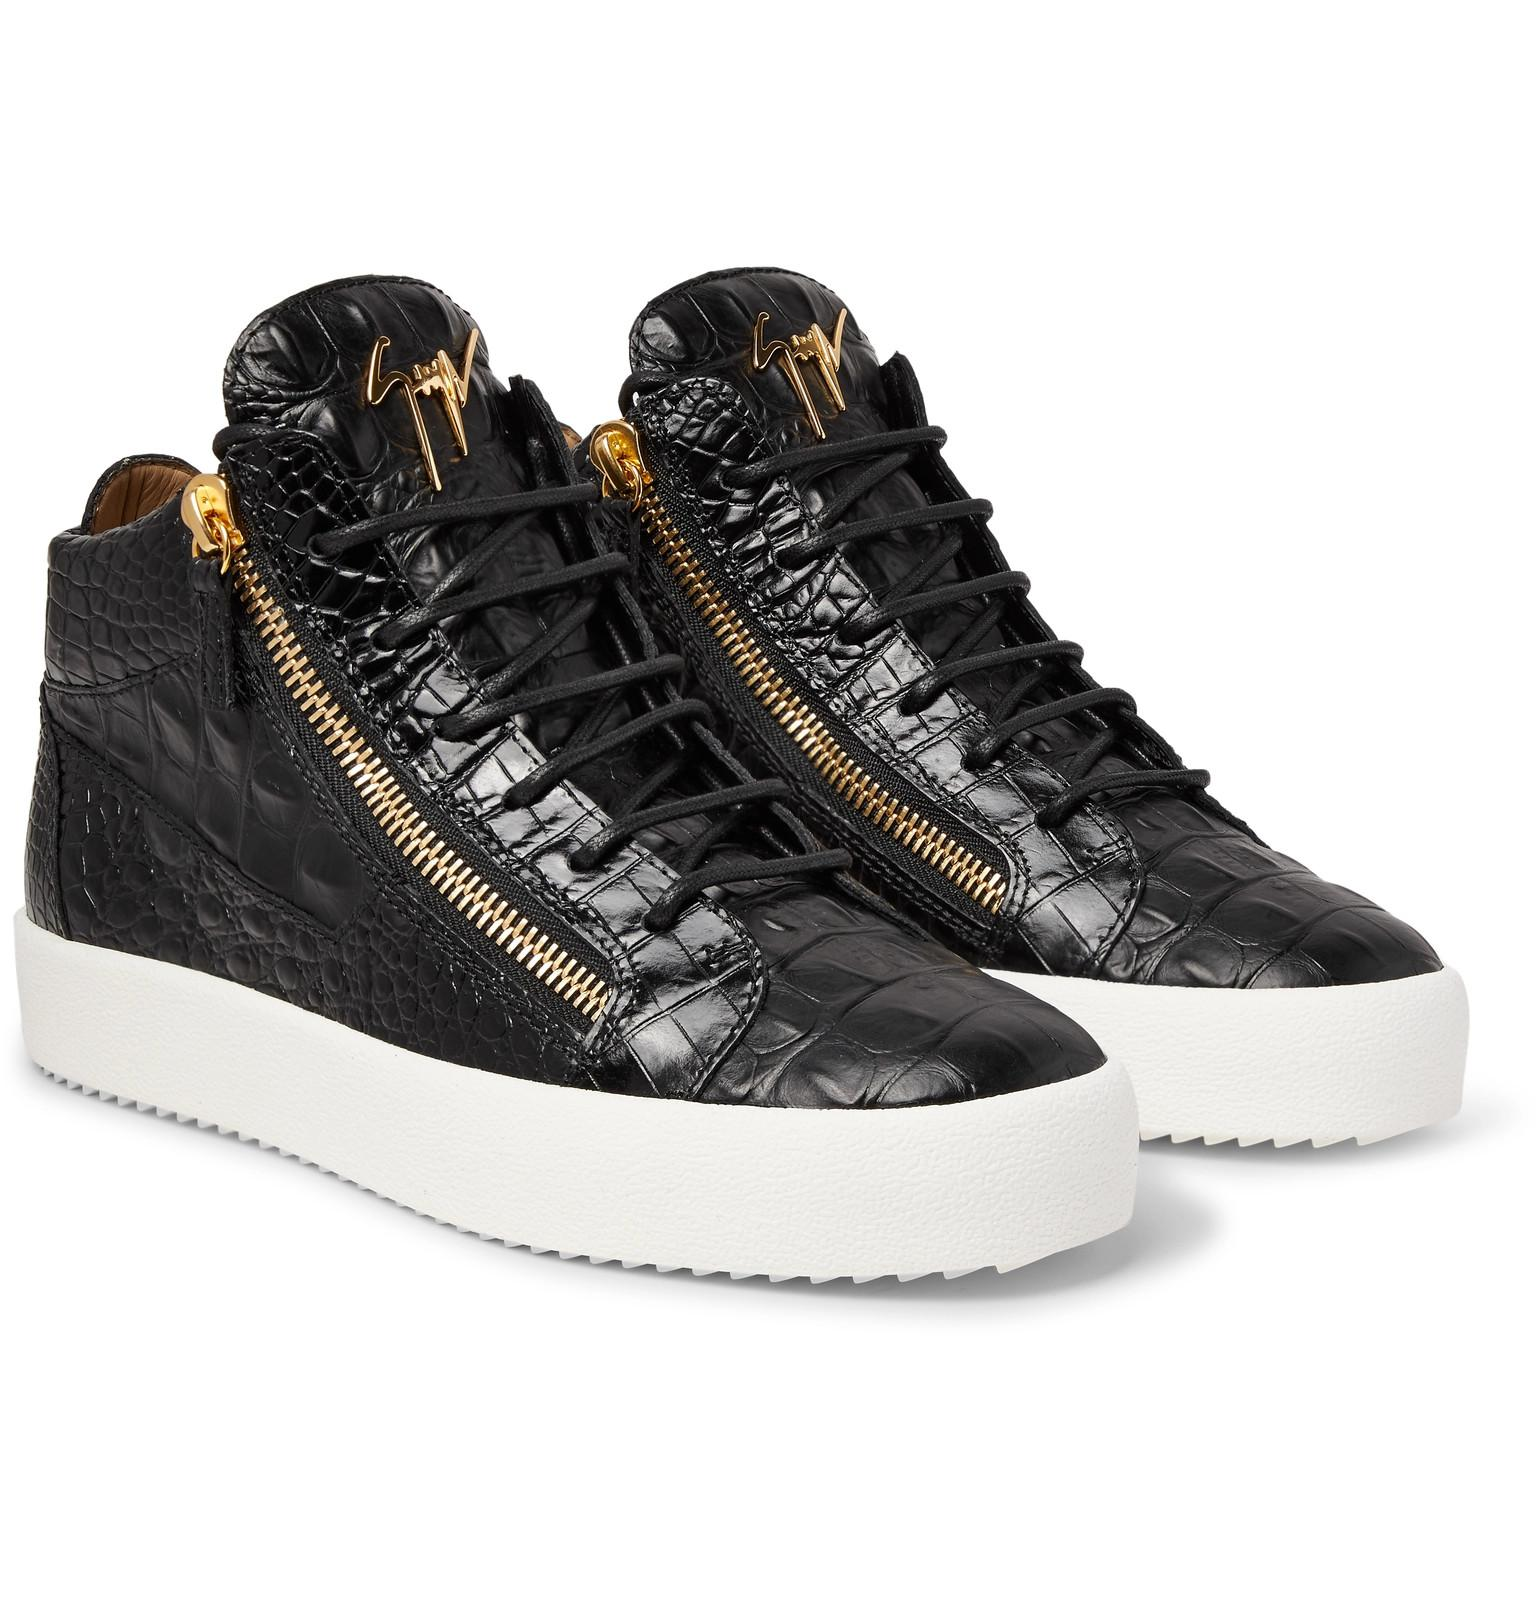 6b28c36497a1a Giuseppe Zanotti Logoball Croc-effect Leather High-top Sneakers in ...